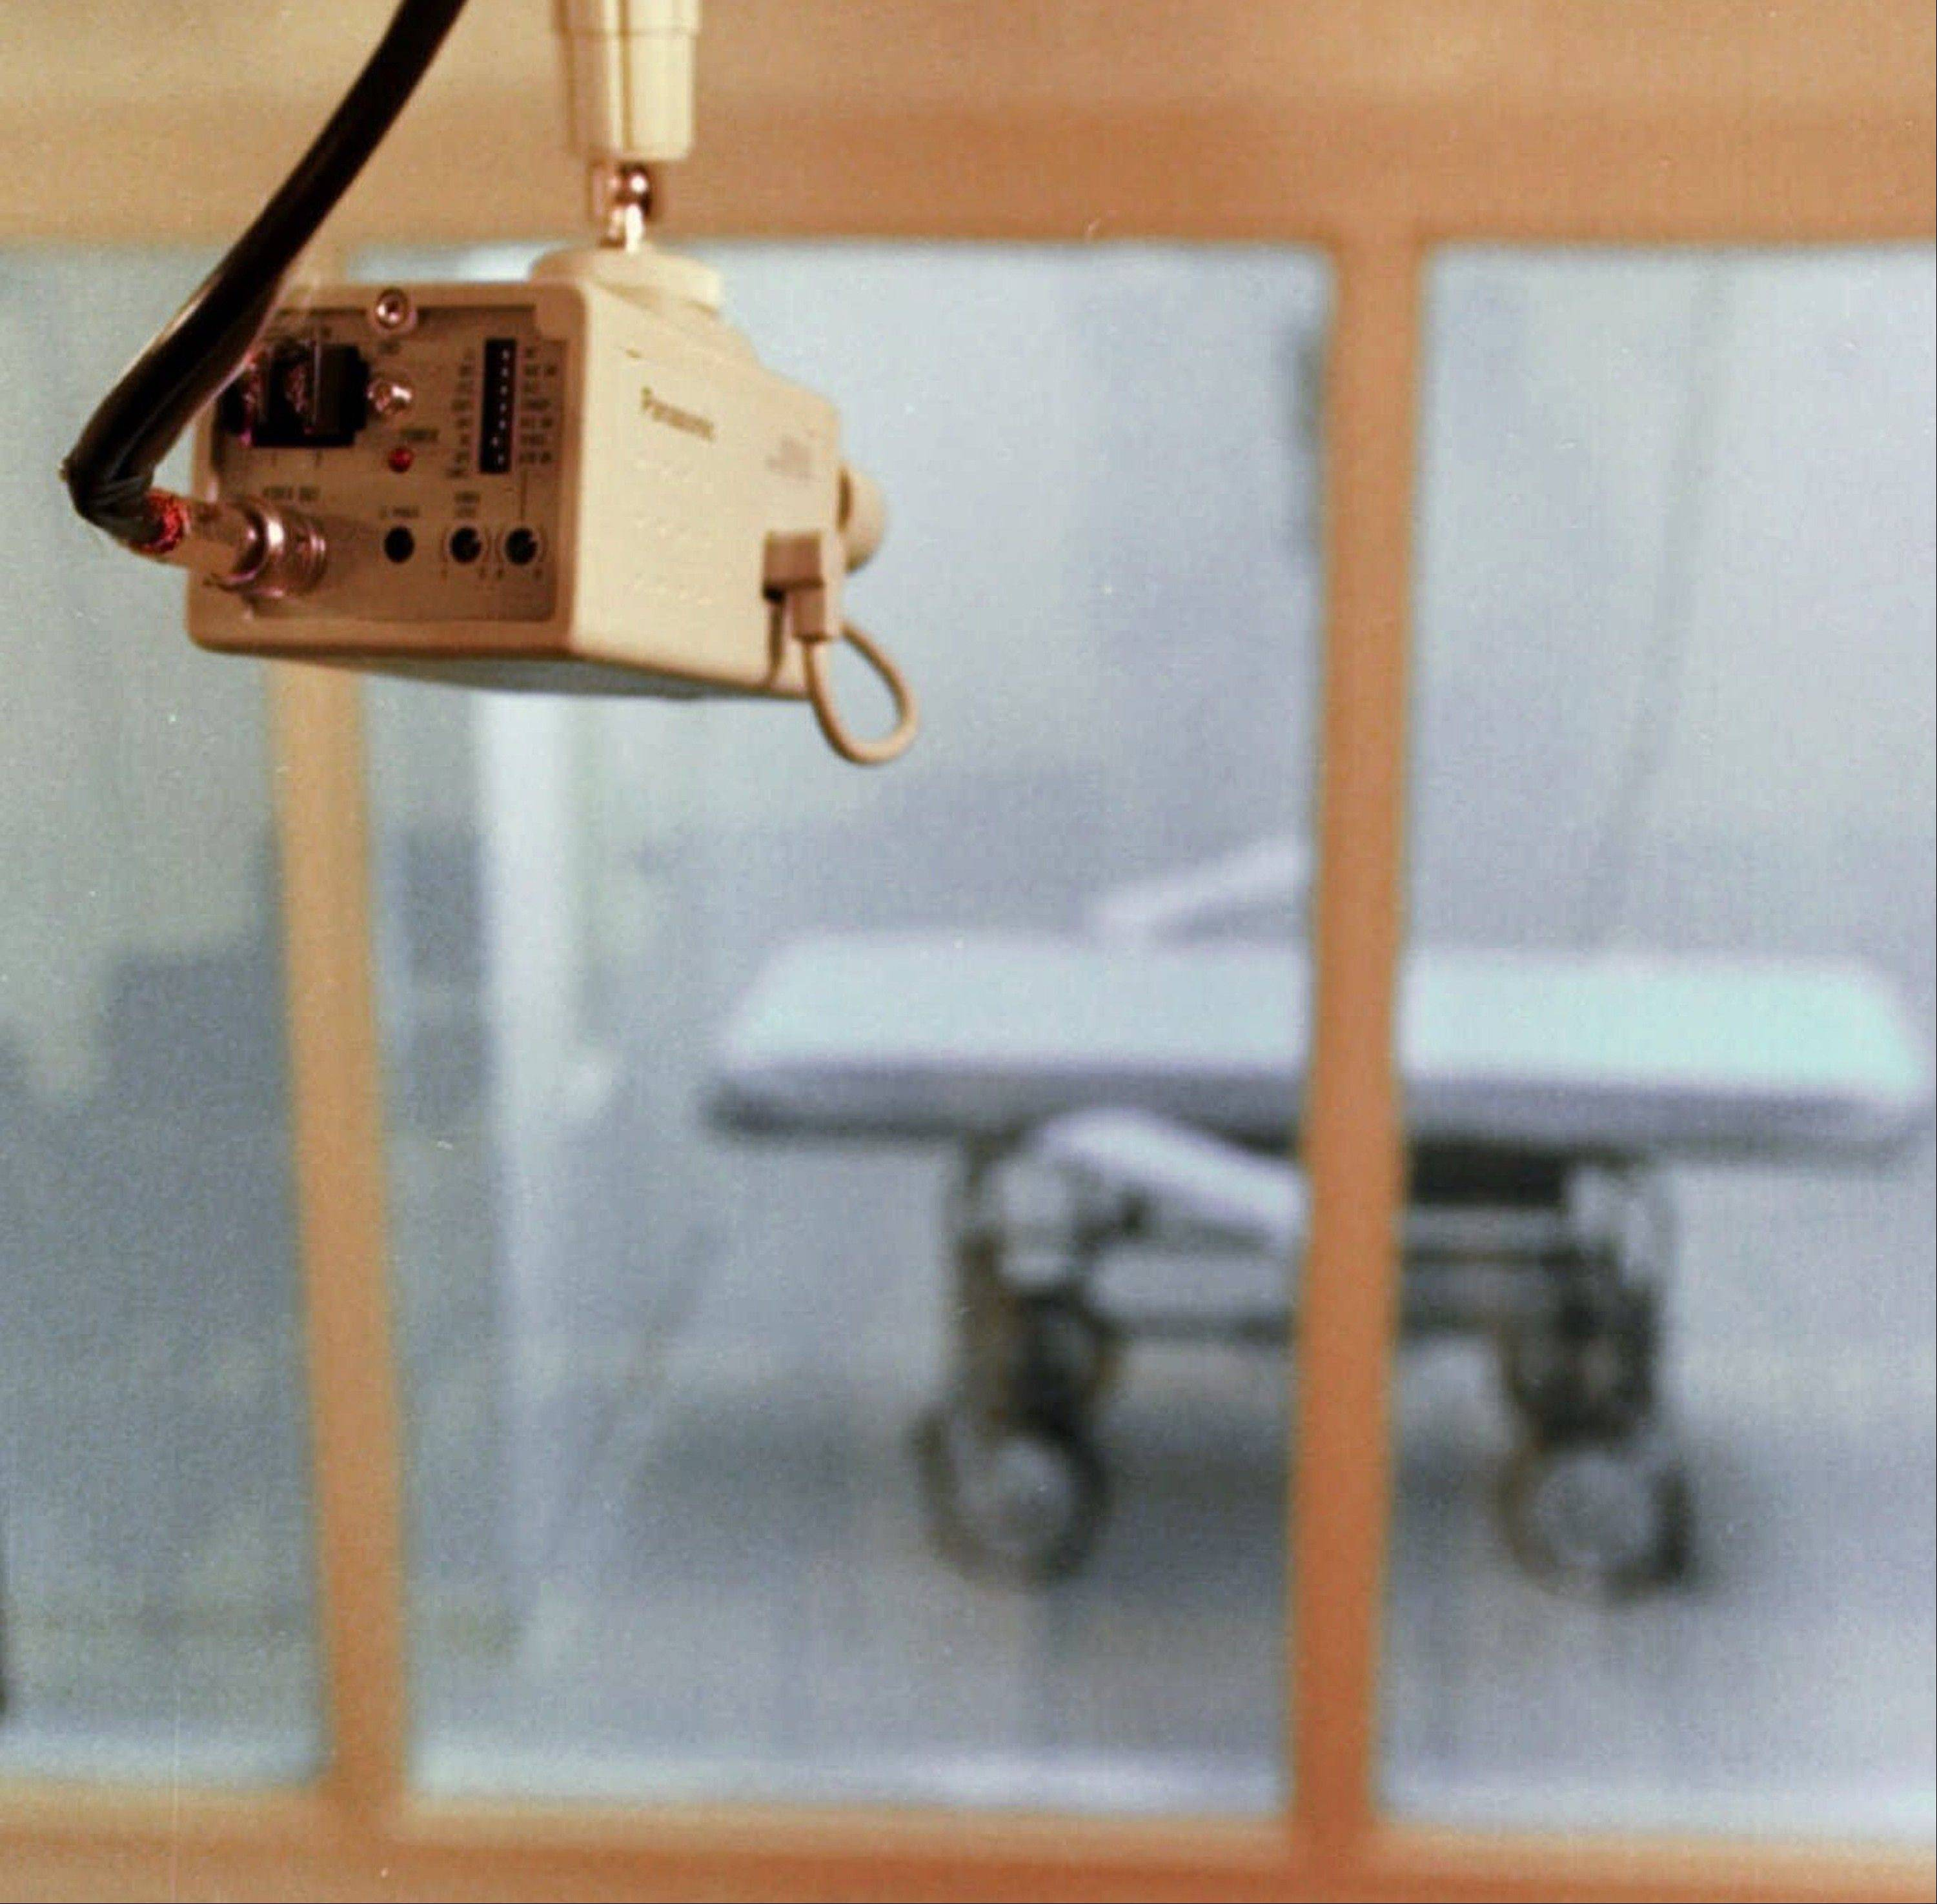 The Arkansas Supreme Court struck down the state's execution law Friday, June 22, 2012, calling it unconstitutional.